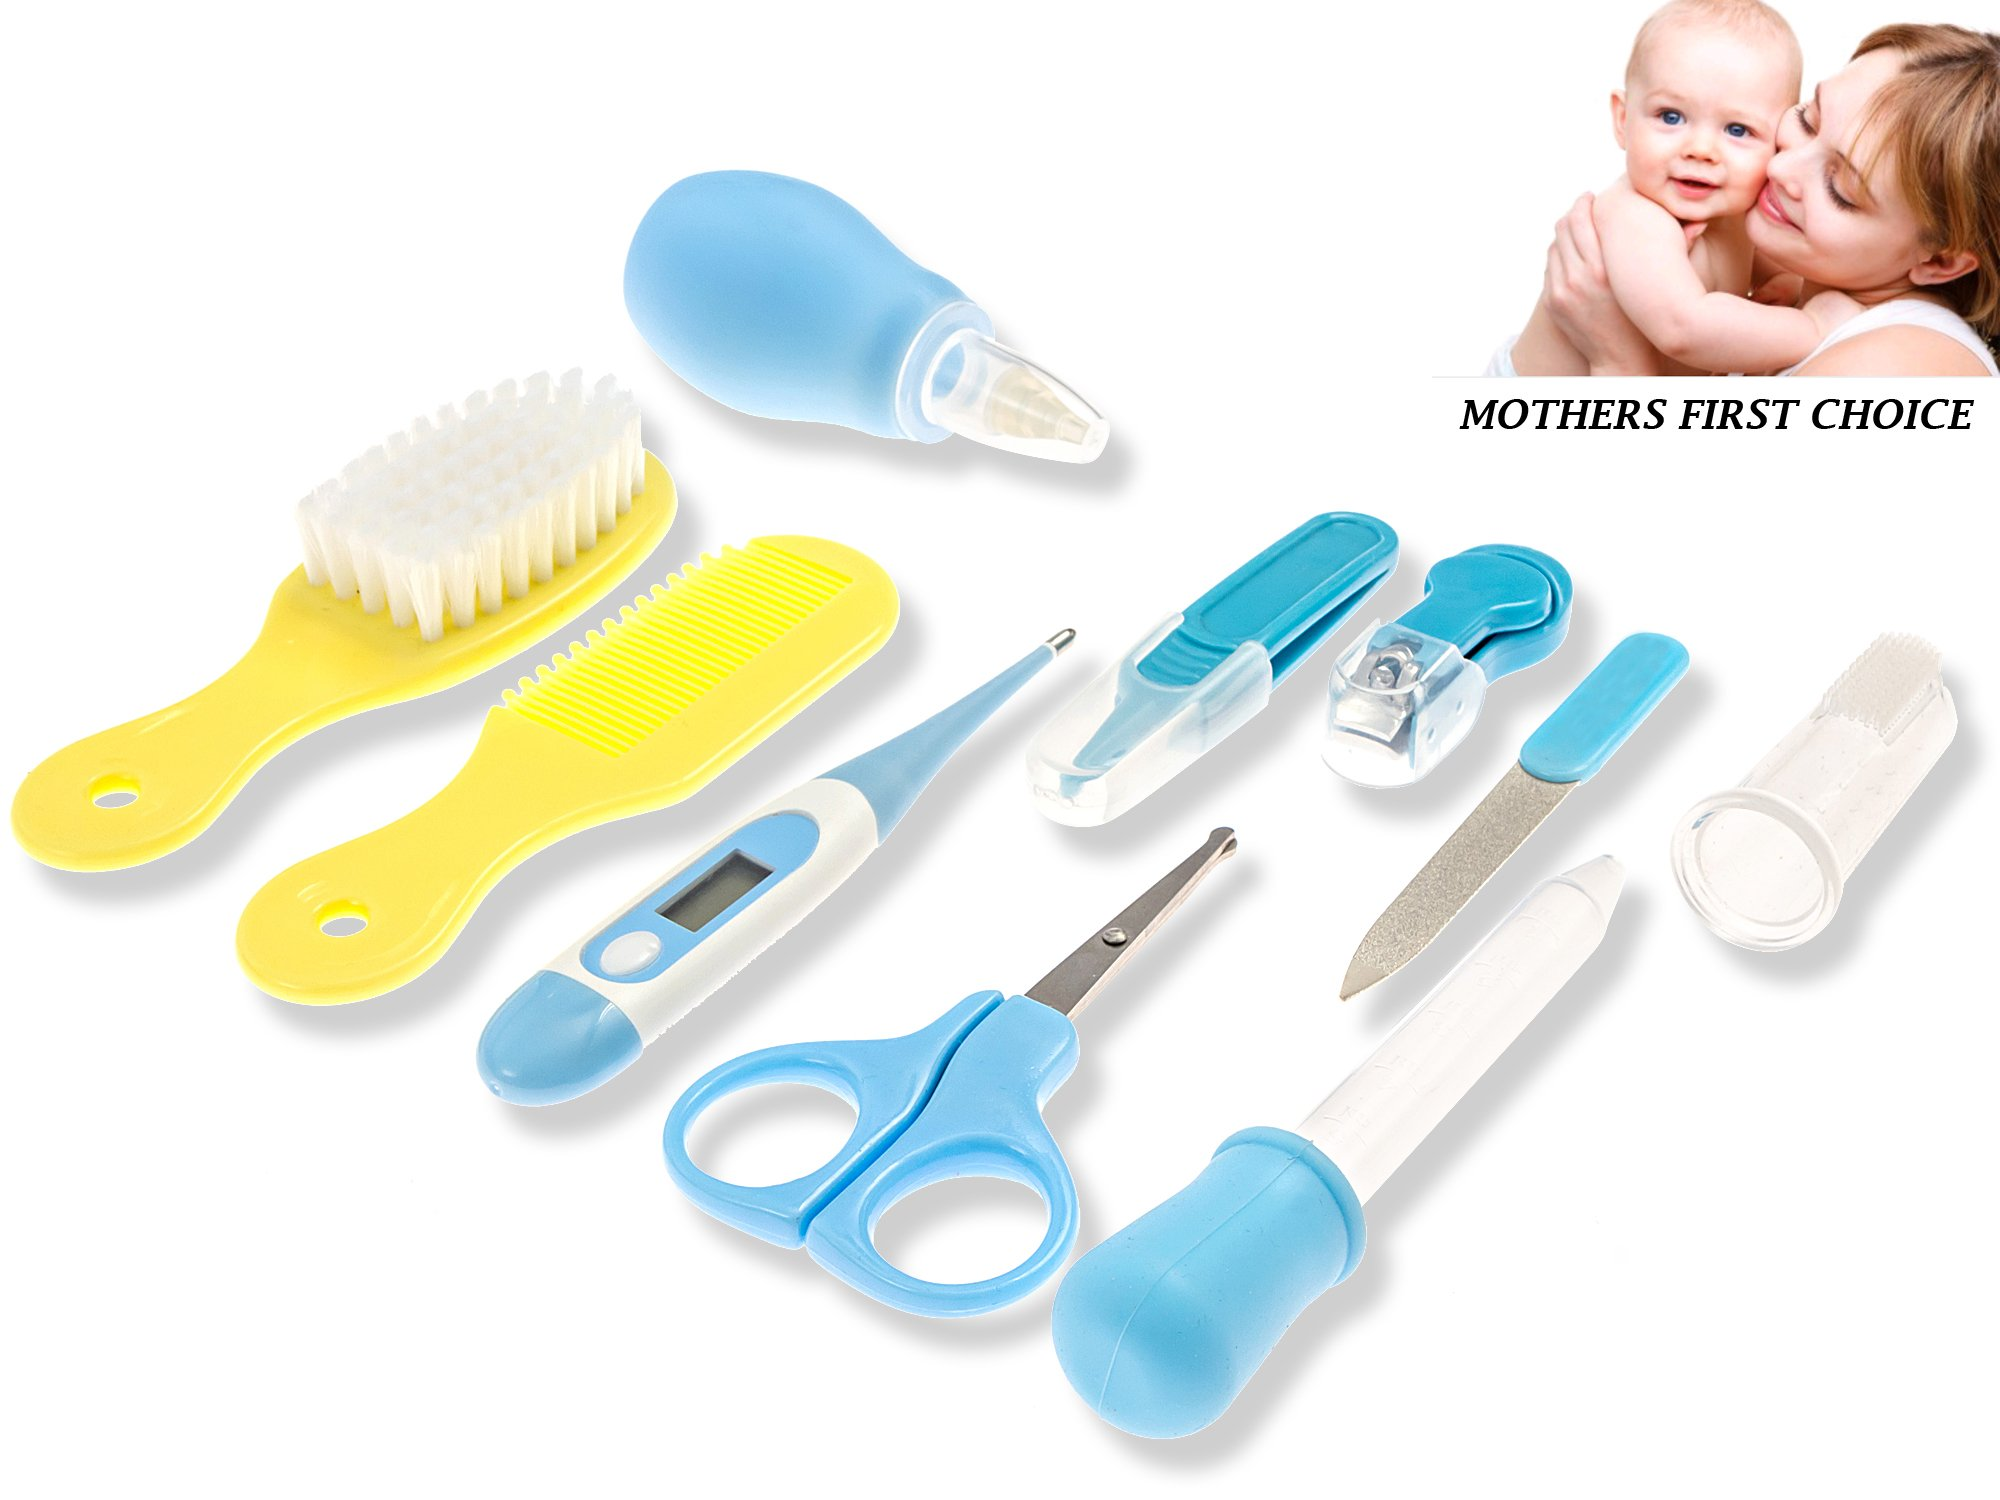 Baby Grooming Kit - Complete Nursery Care Kit - Healthcare Care Kit And Baby Medical Kit For Boys And Girls - Safety Kit Baby Healthcare and Grooming Kit - Baby Registry